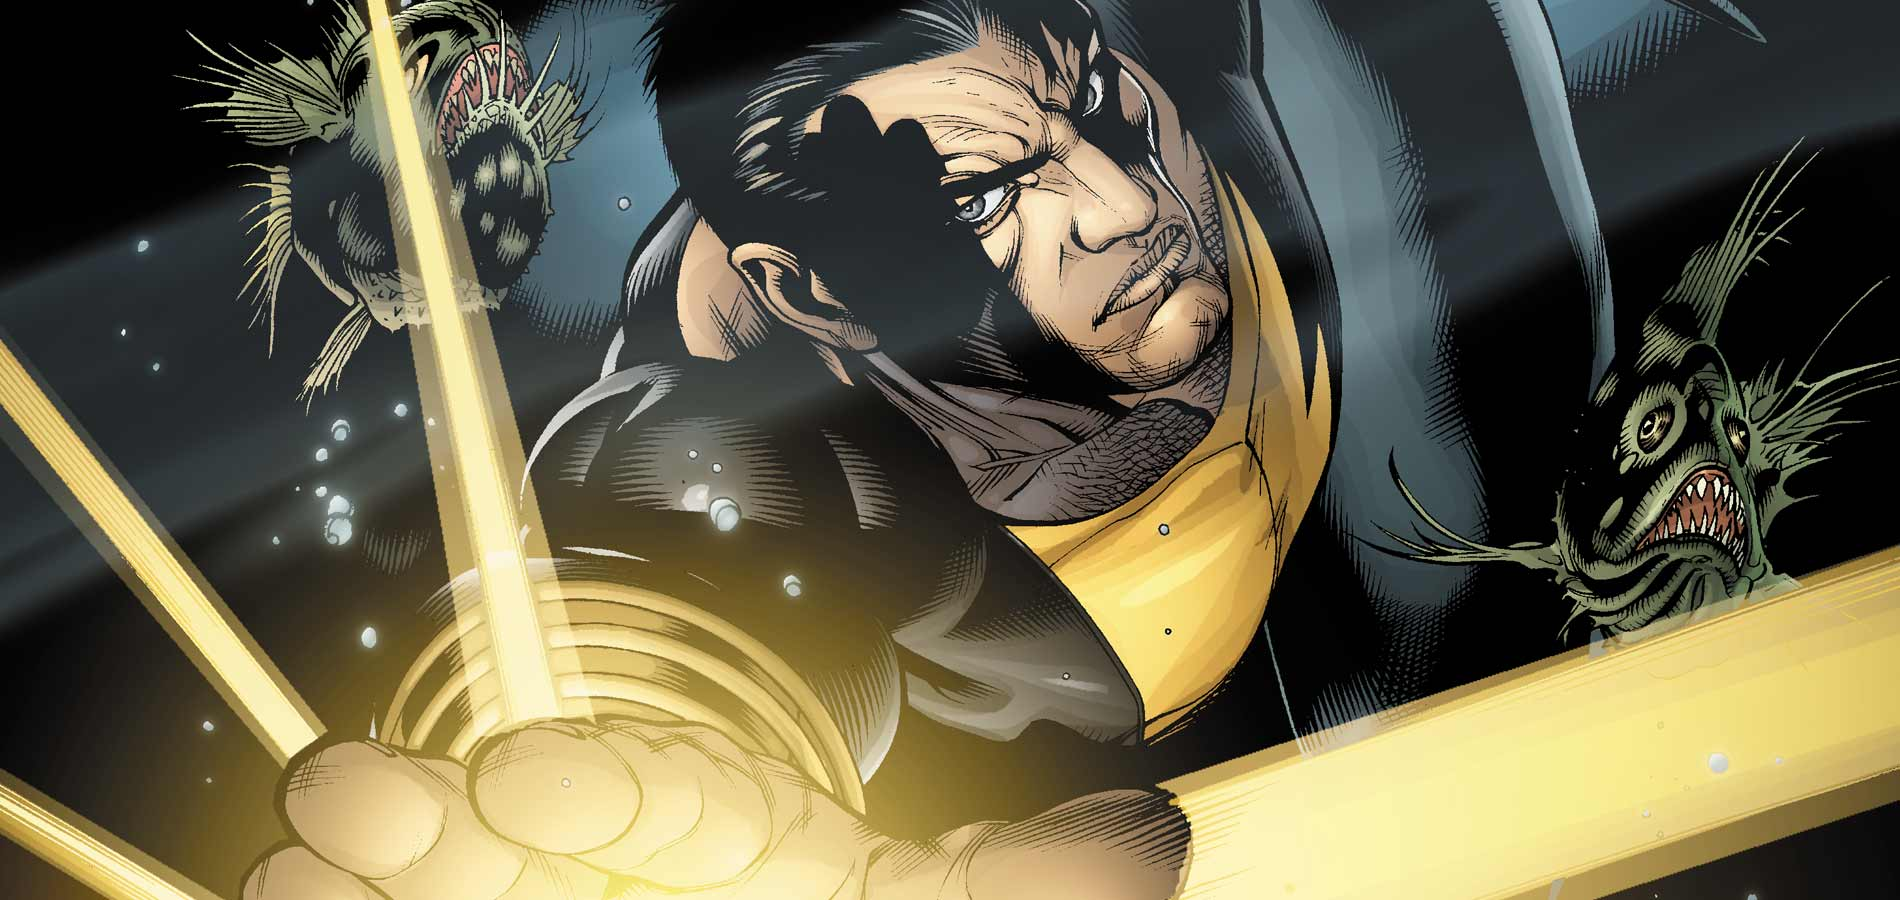 We have been waiting to see Dwayne Johnson as Black Adam for a while now